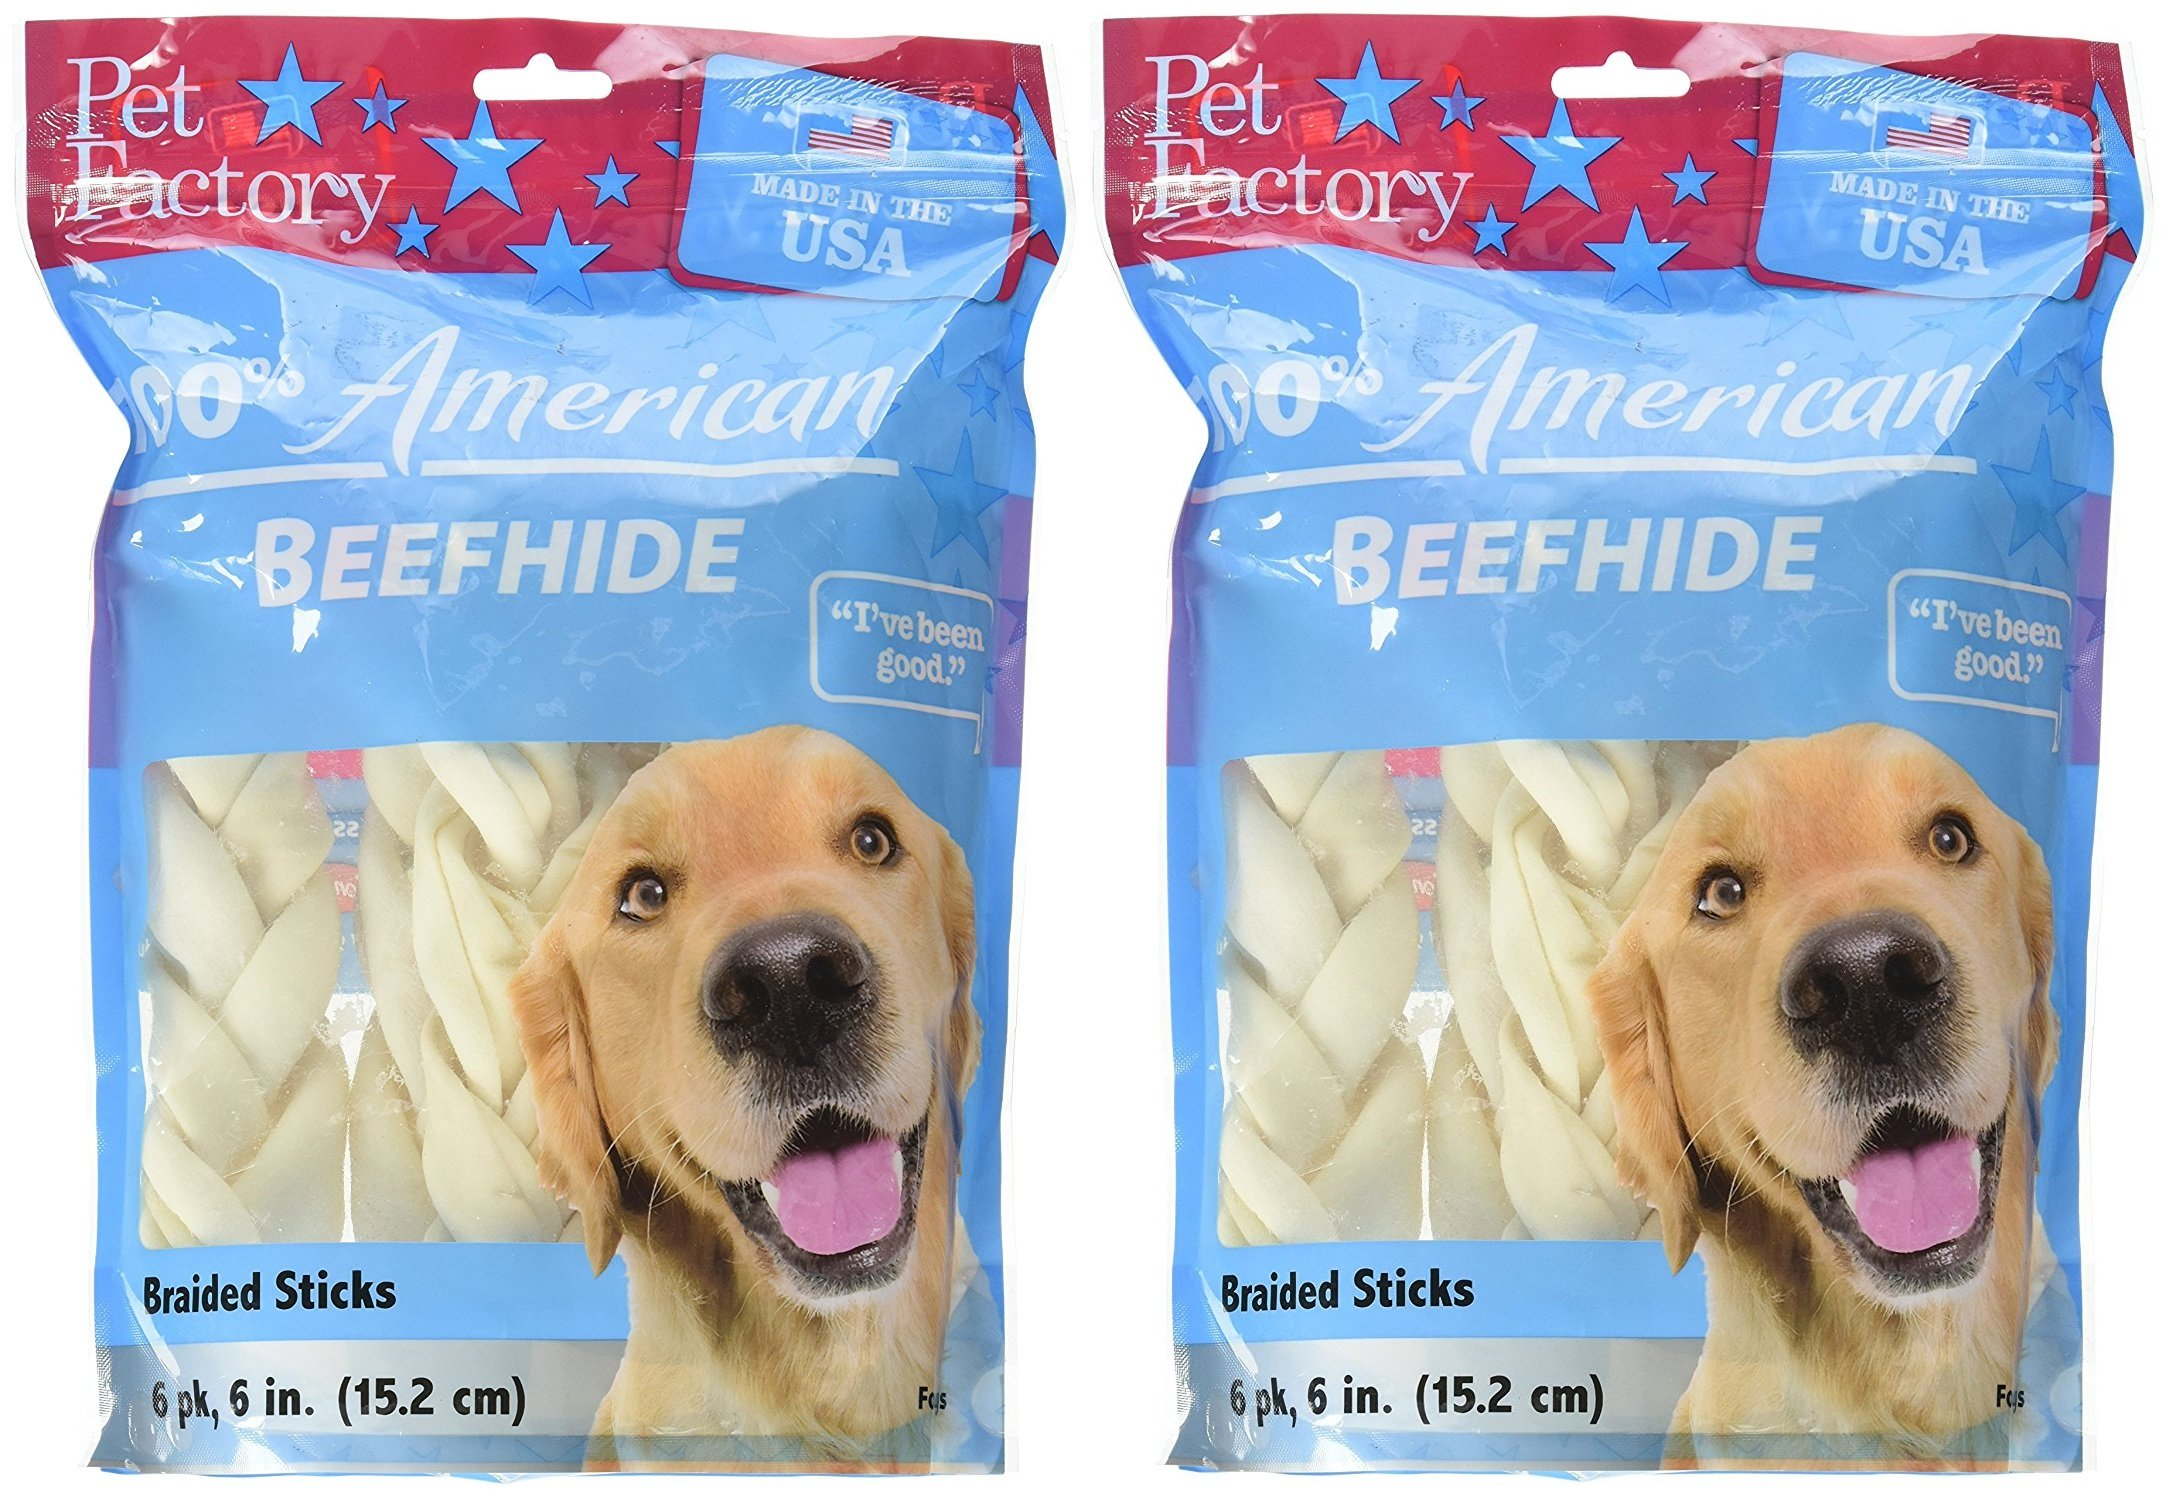 Pet Factory 78106 Beefhide 6'' Braided Sicks. 12 Pack. Made in USA (2 Packages of 6)